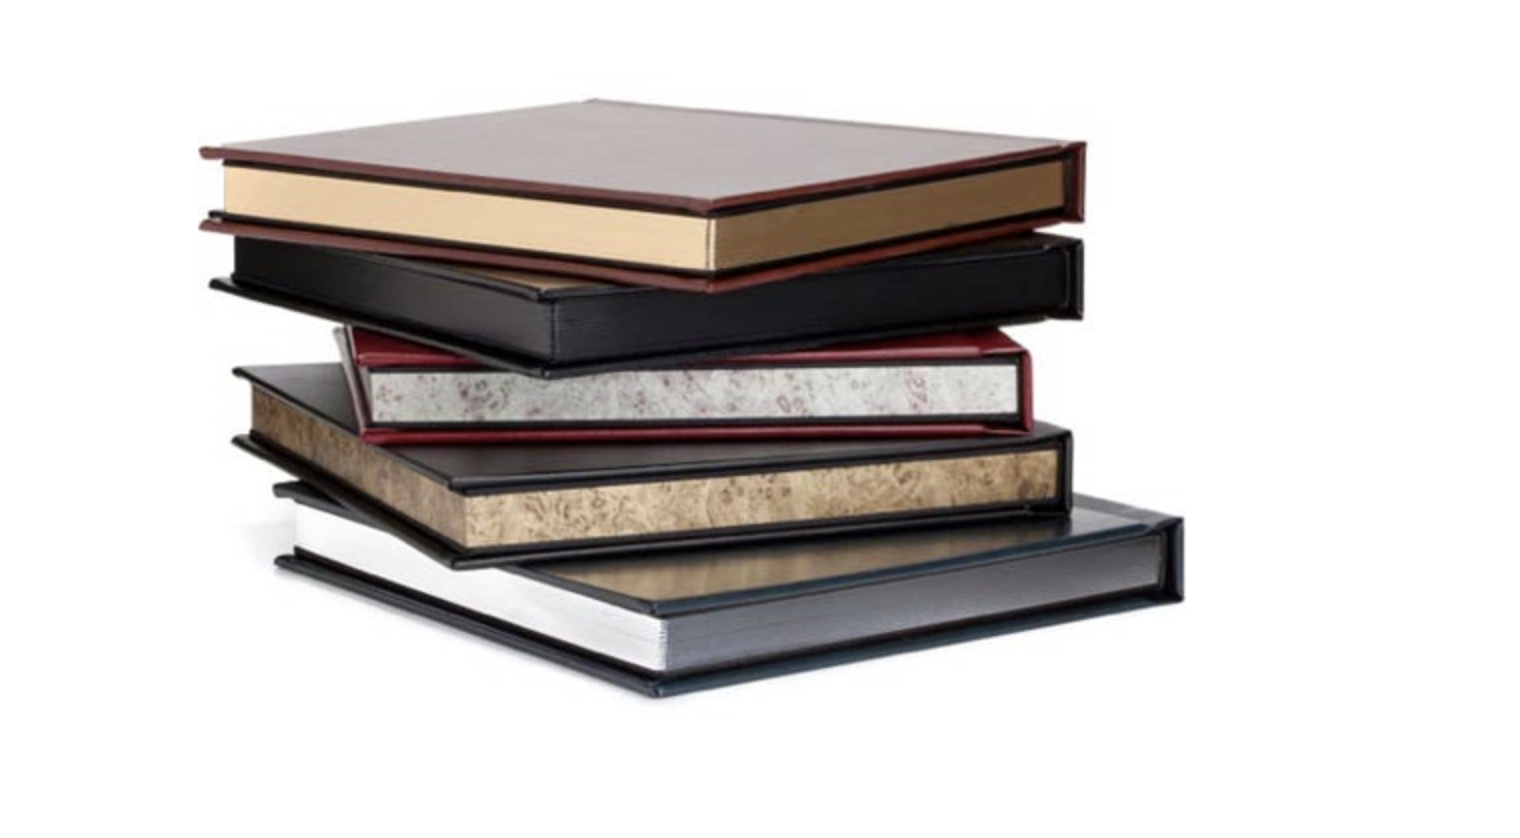 Premium Heirloom Albums - Gorgeous albums with an acrylic cover that you and your family will be able to enjoy and pass down to the next generation.